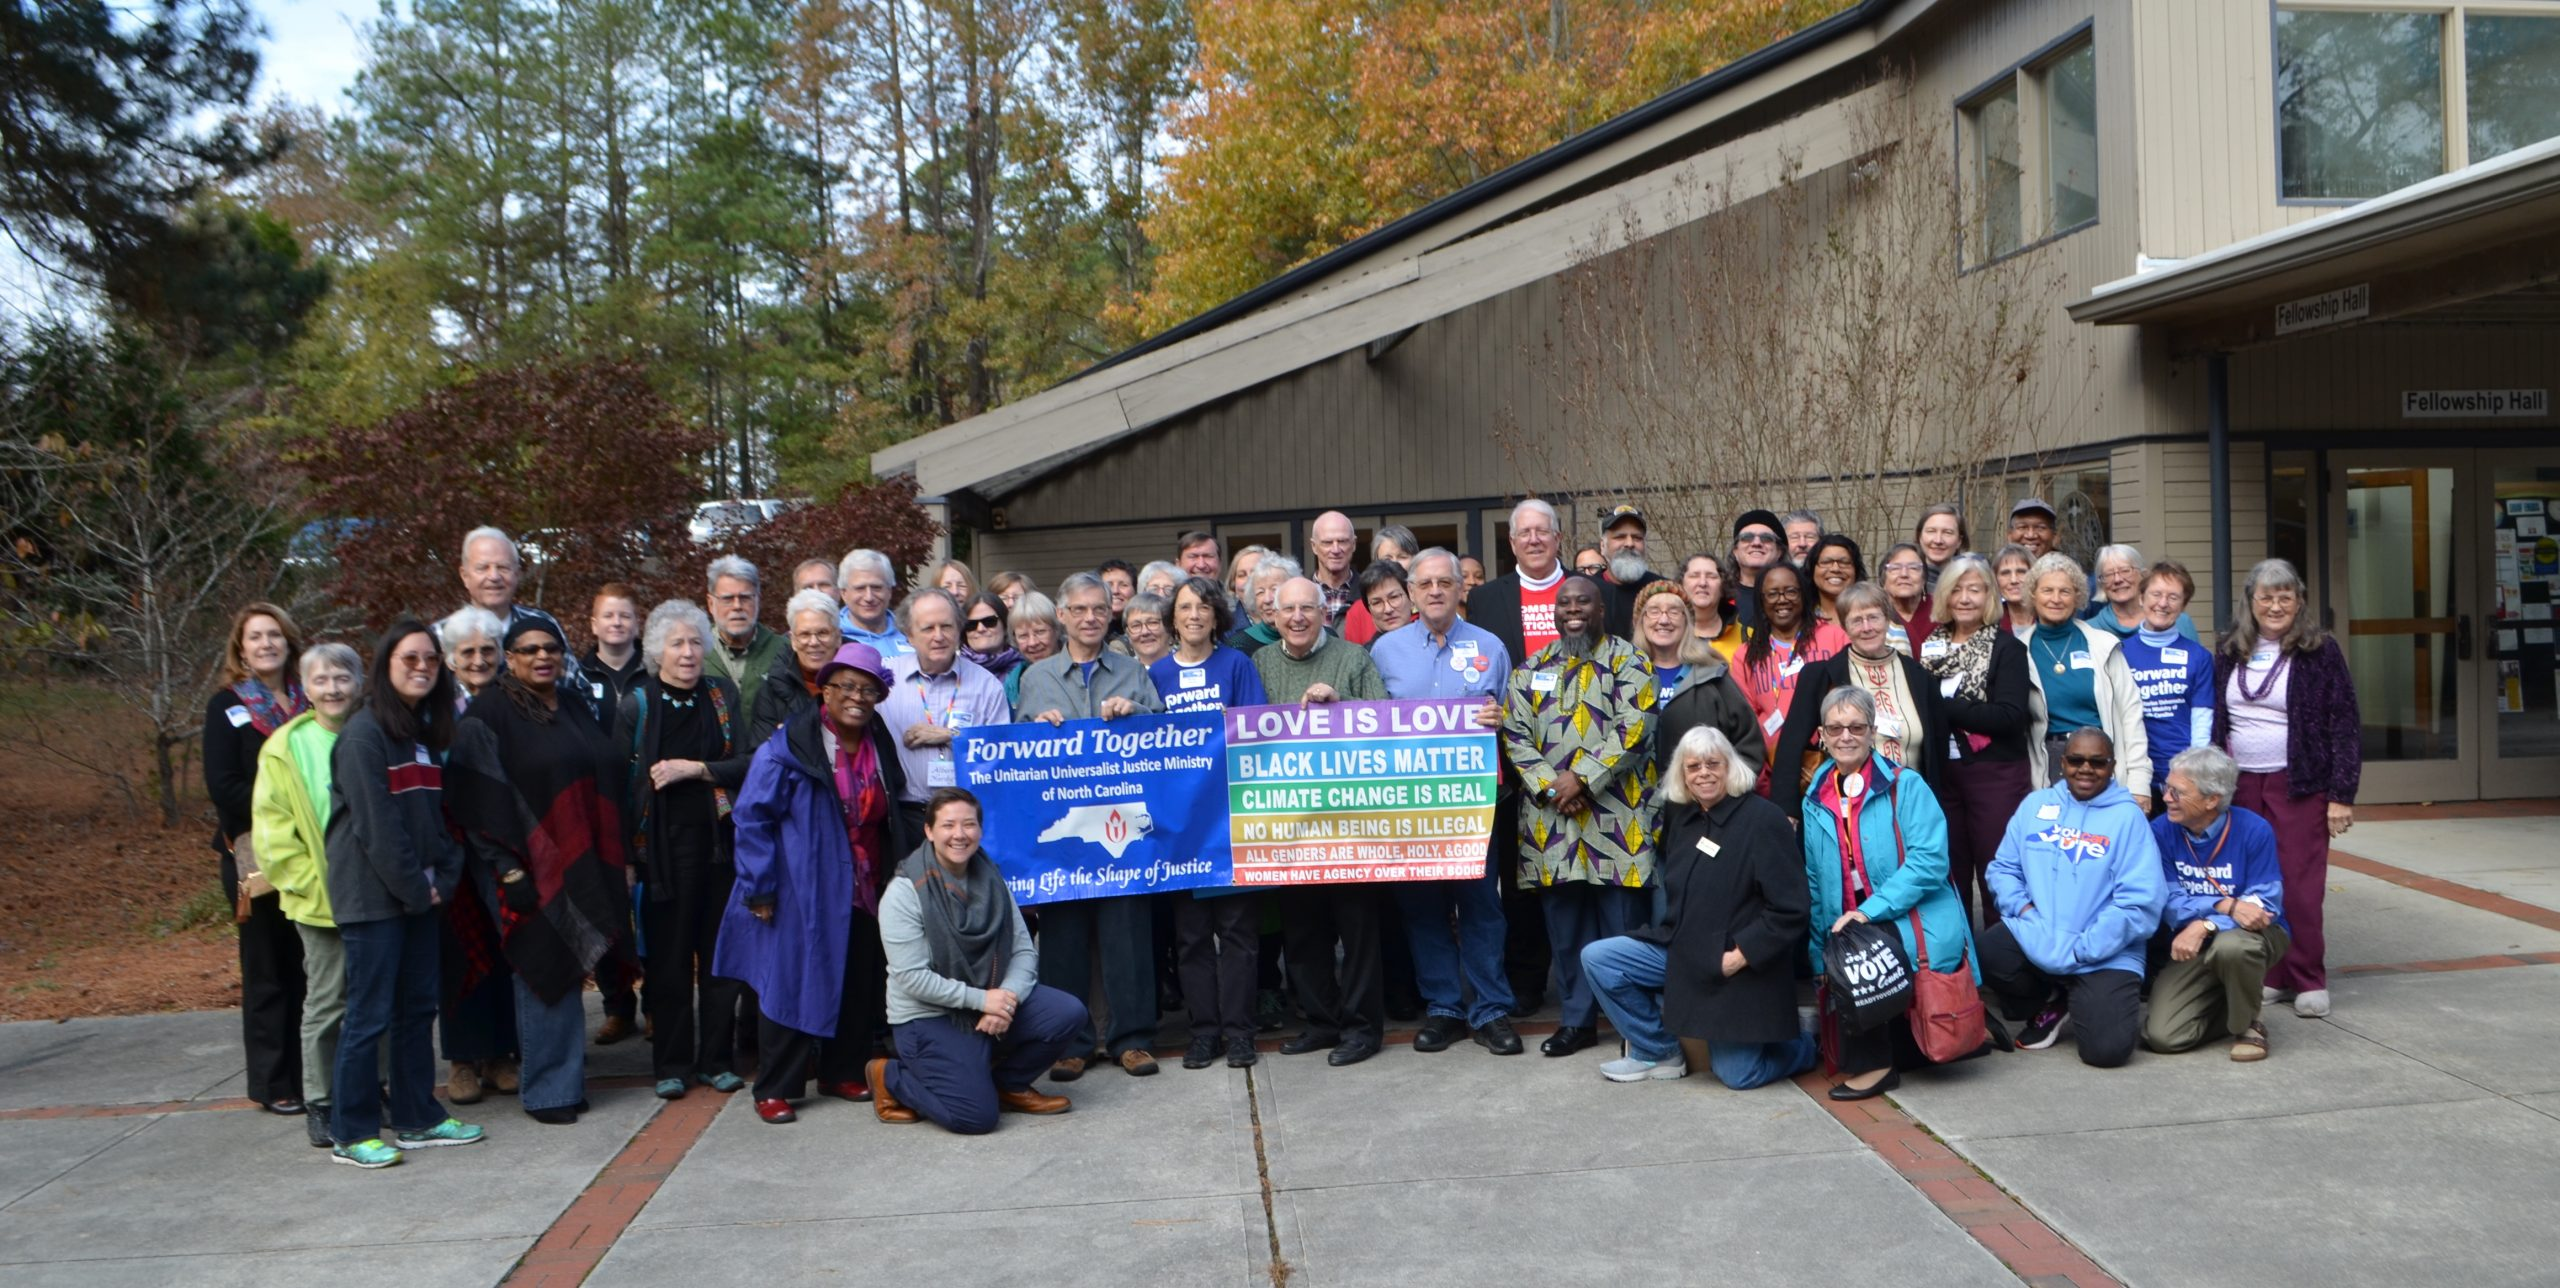 UU Justice NC Annual Gathering! - Sunday October 24th on Zoom